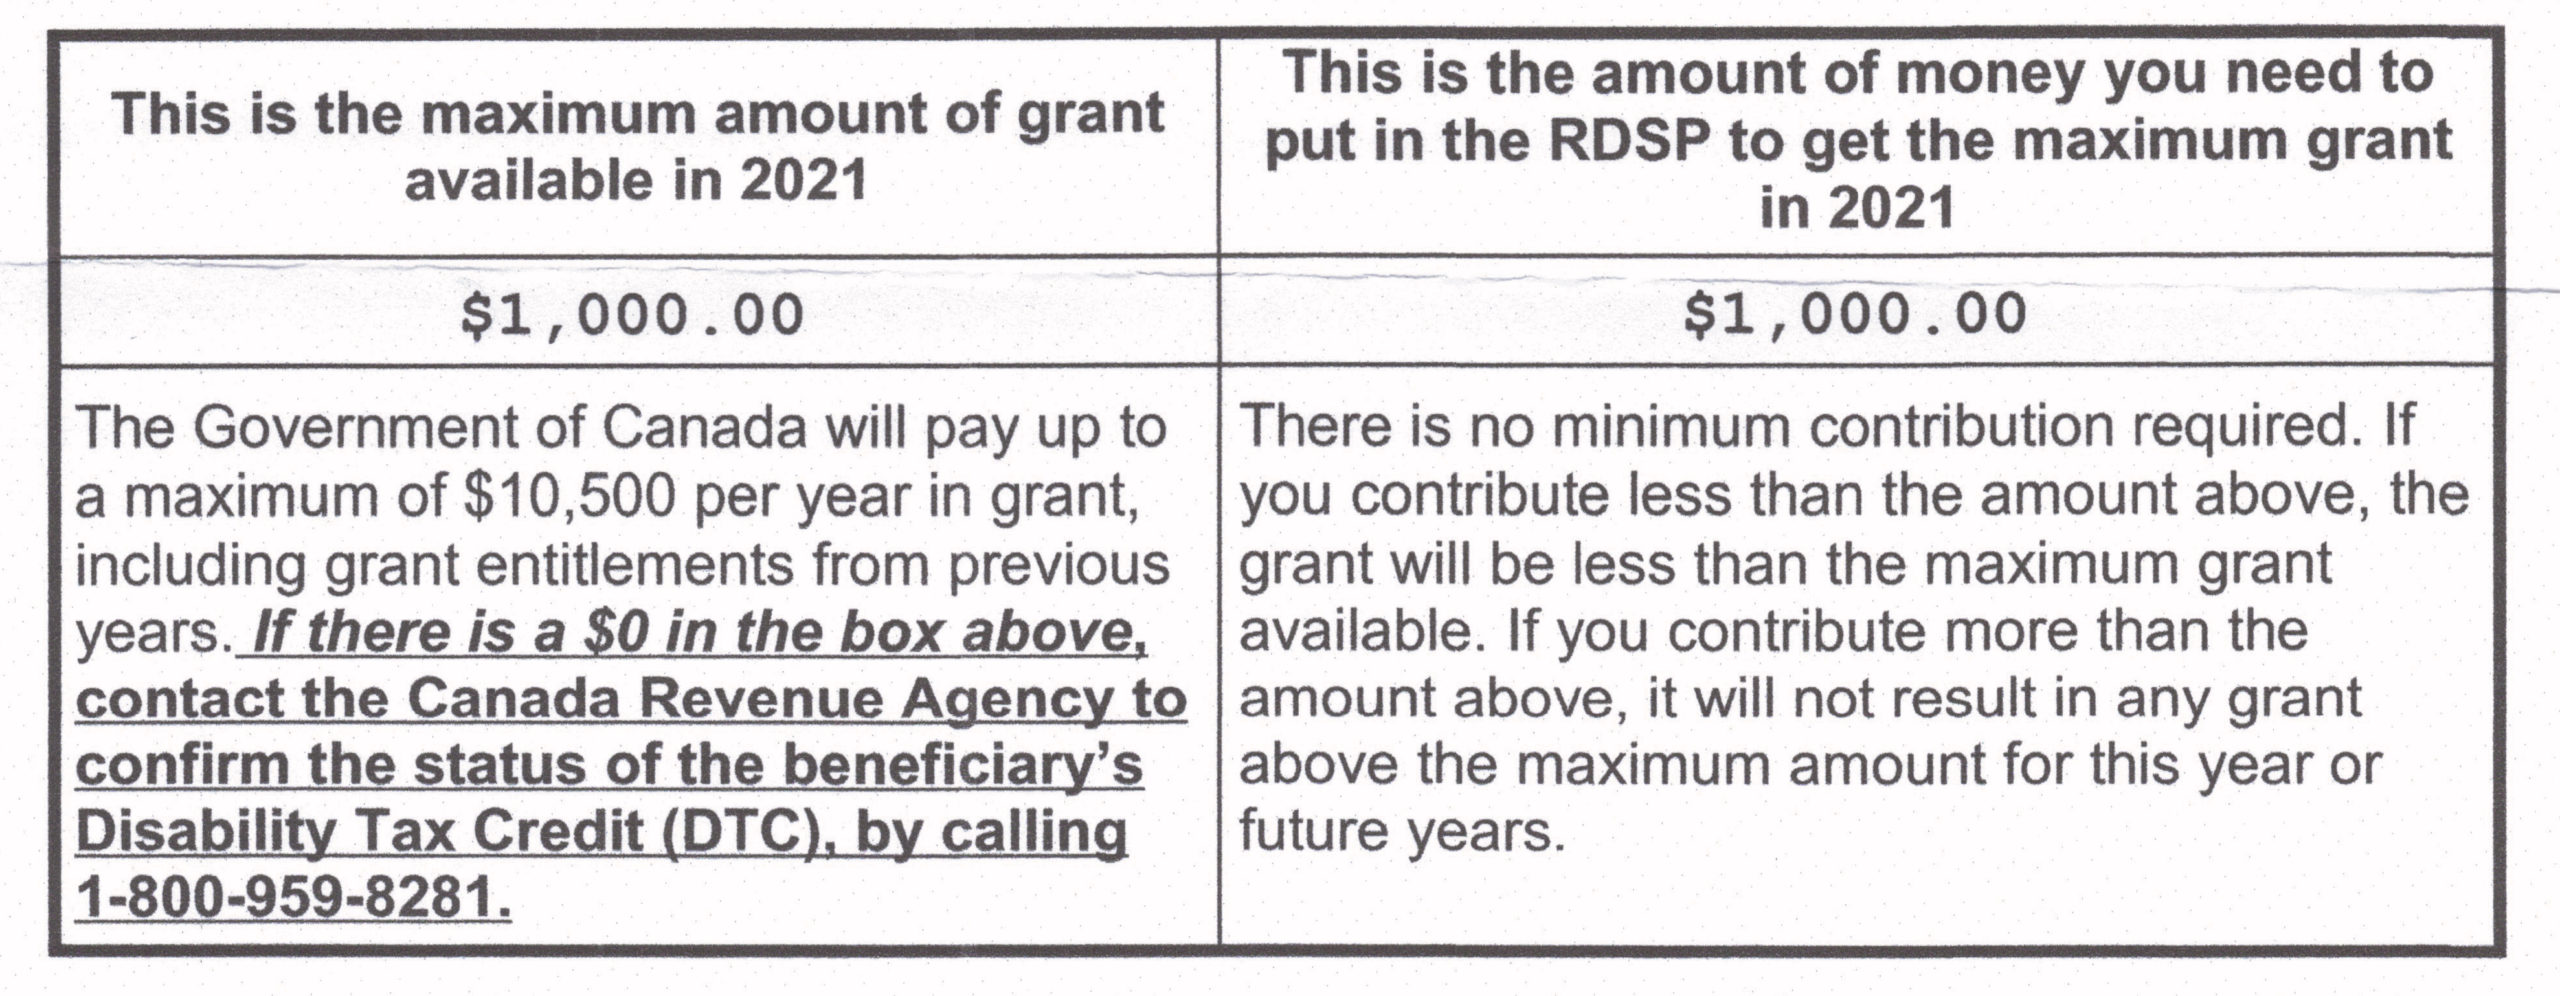 RDSP Grant Entitlement 2021